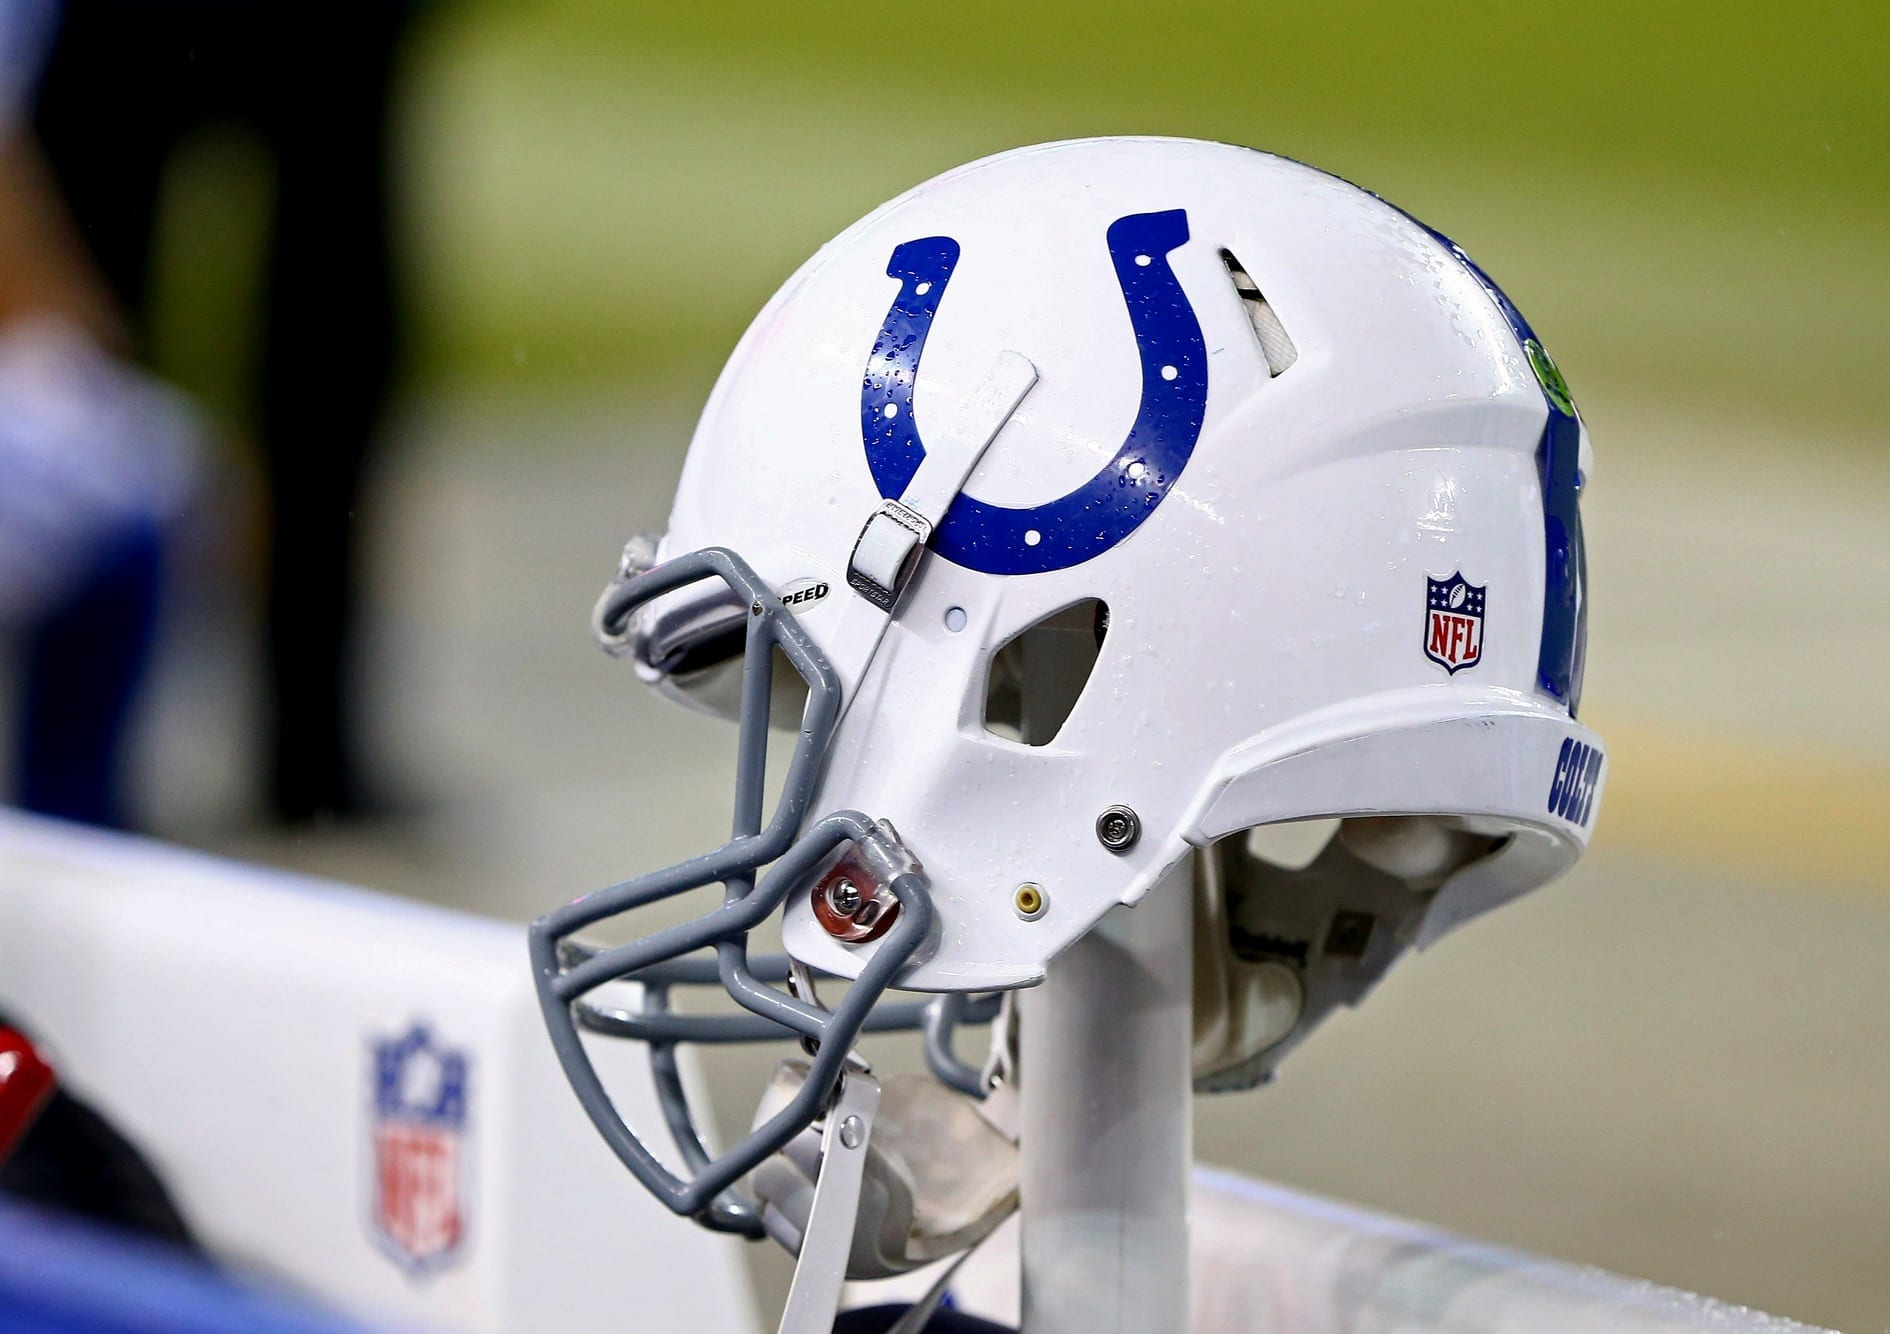 Colts-helmet-2